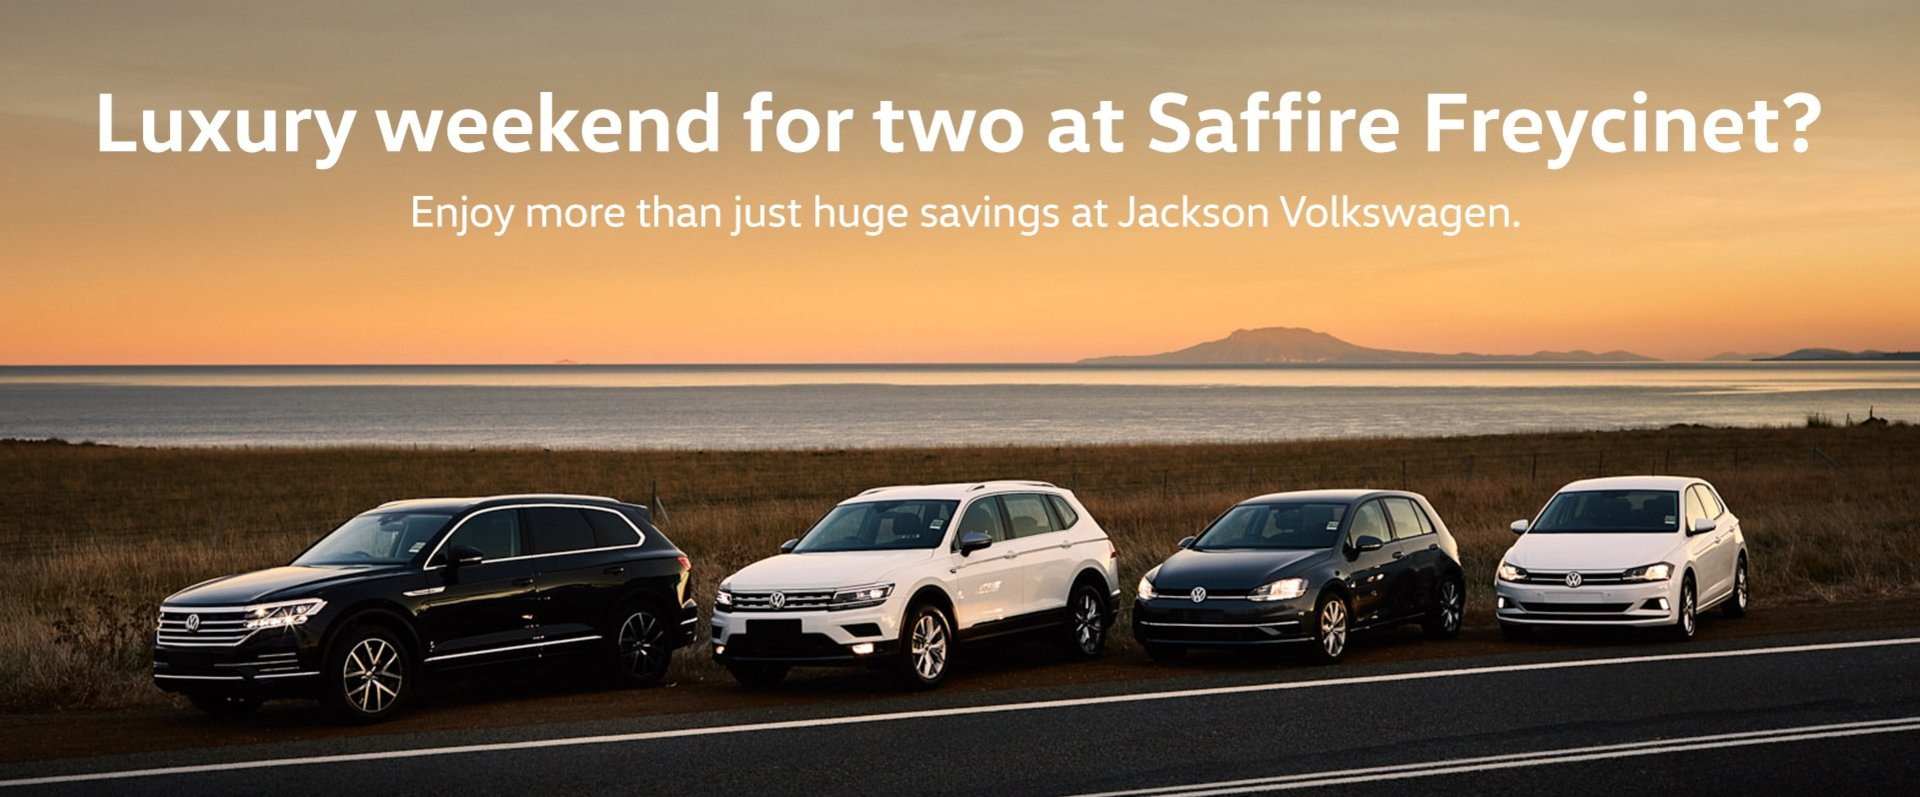 Win a Luxury Package at Saffire Freycinet